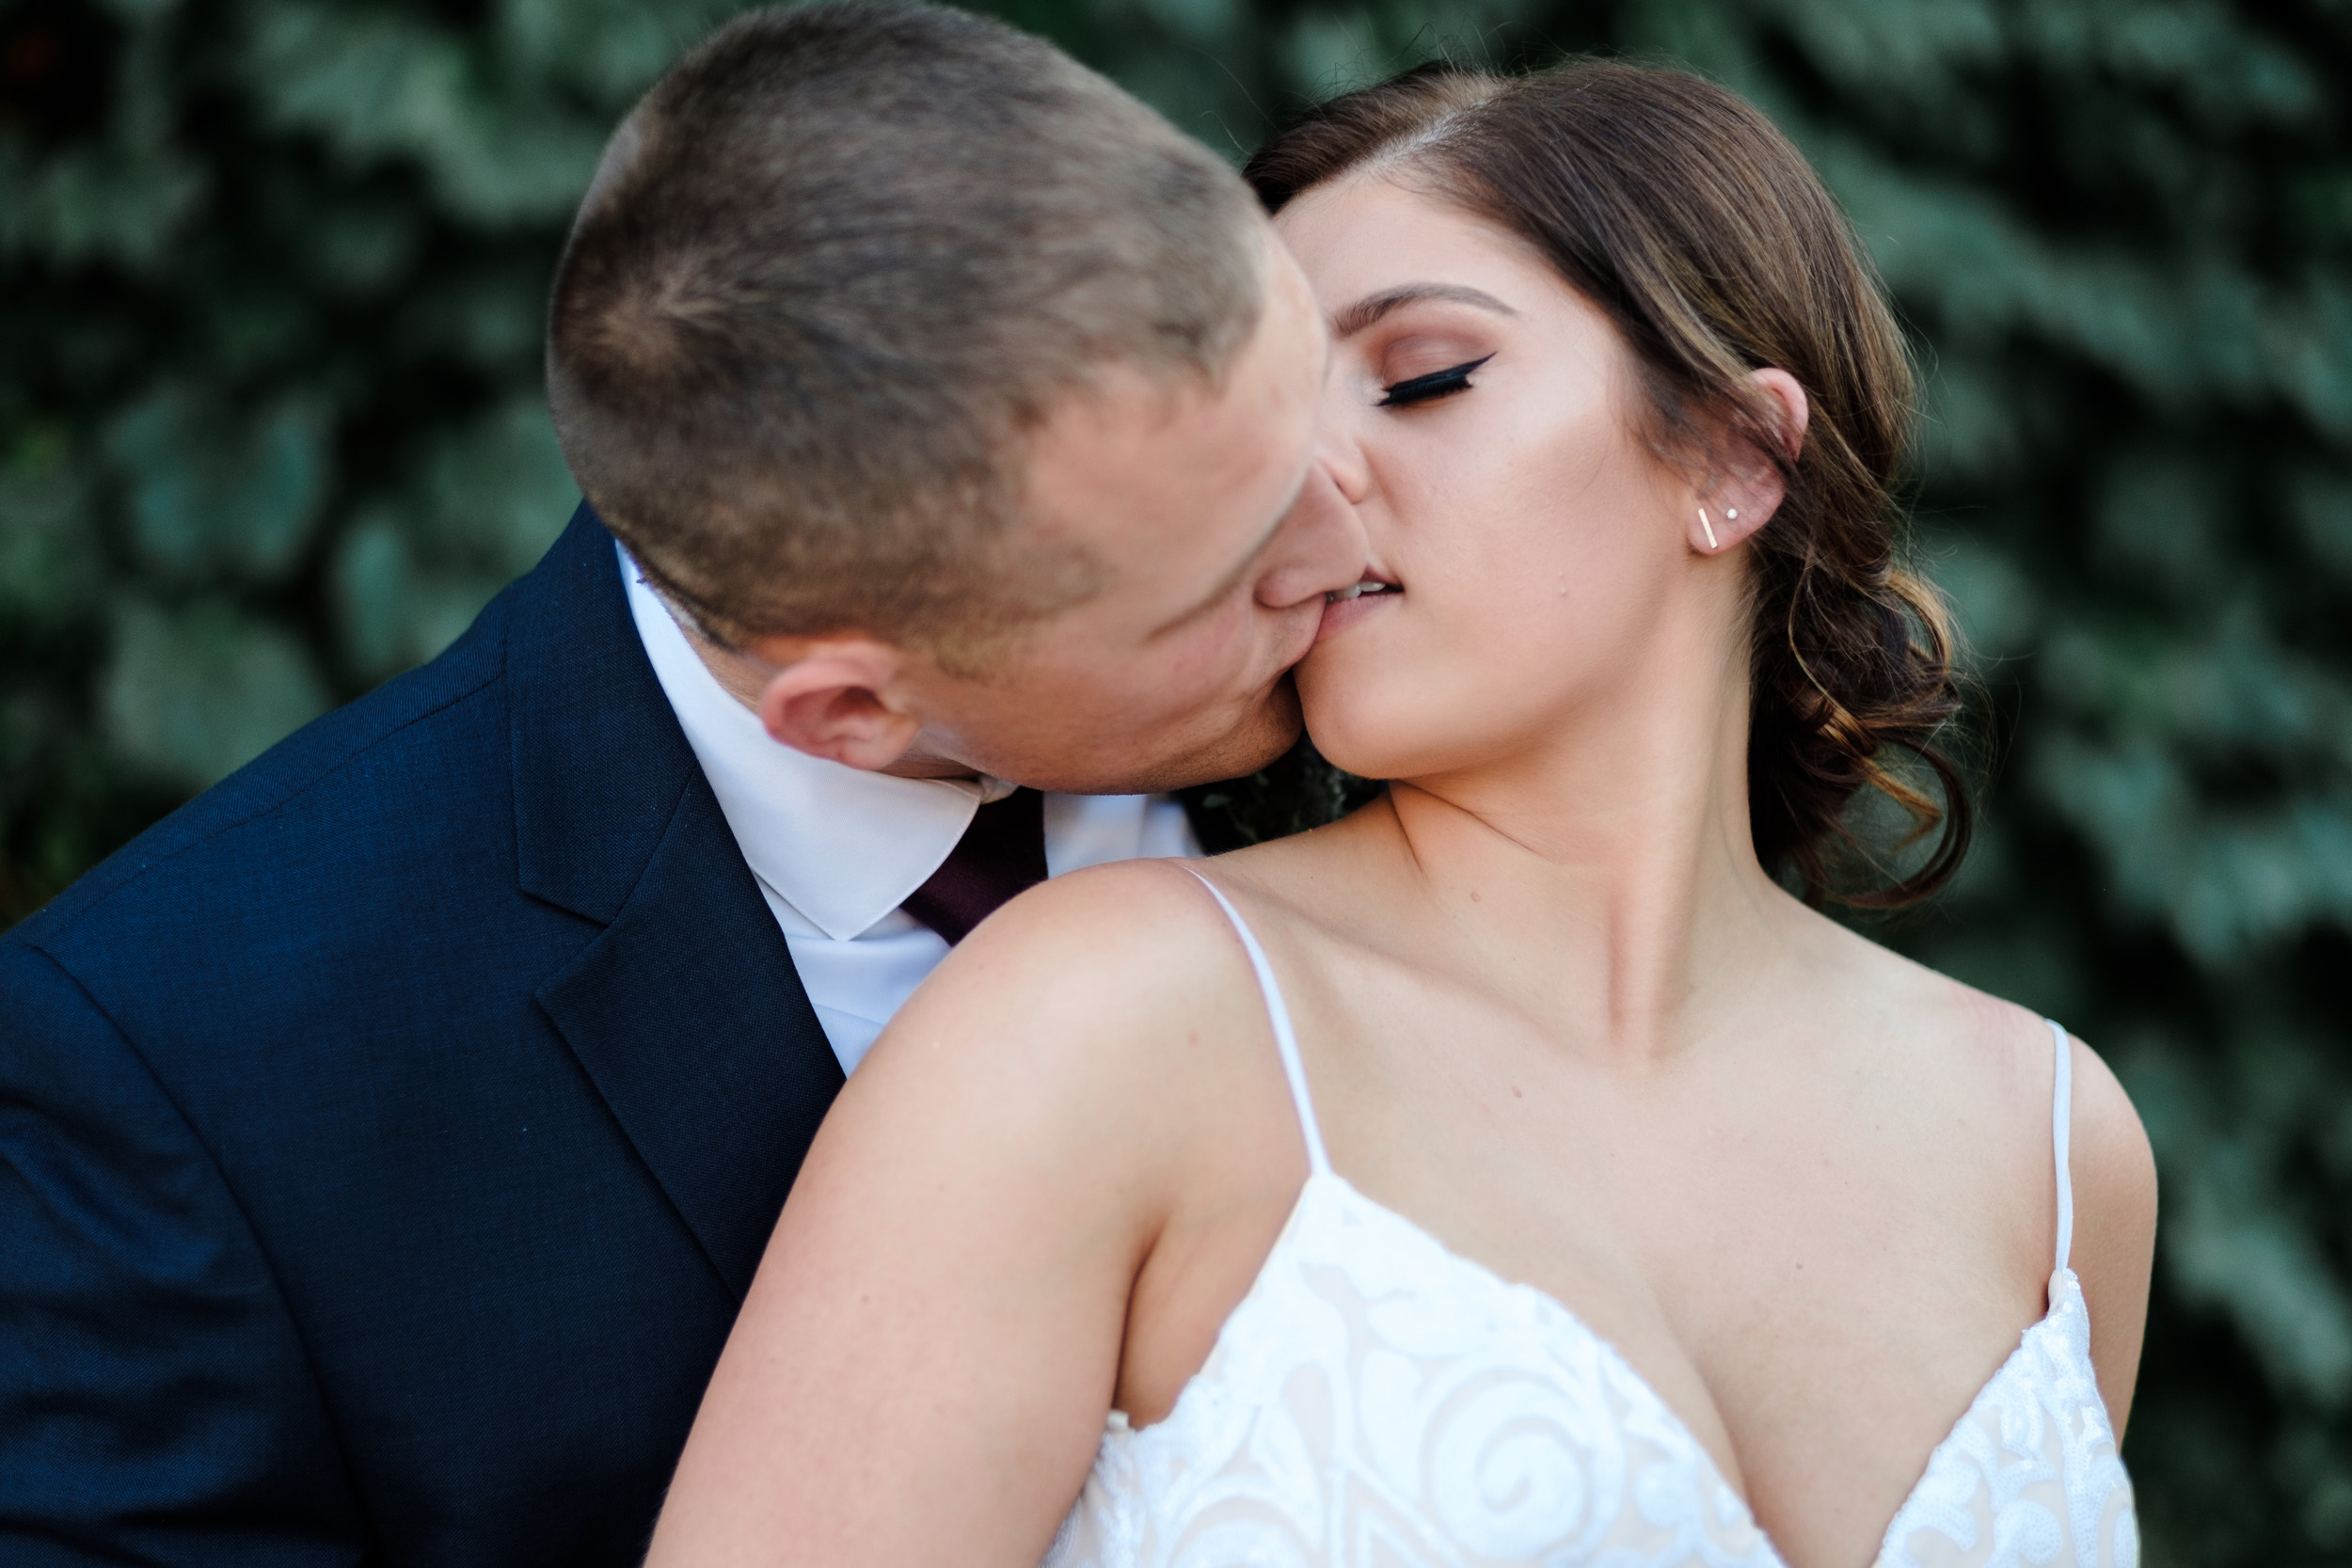 Bride and groom kissing in alley behind the wagner house in freeport with ivy on the brick walls behind them